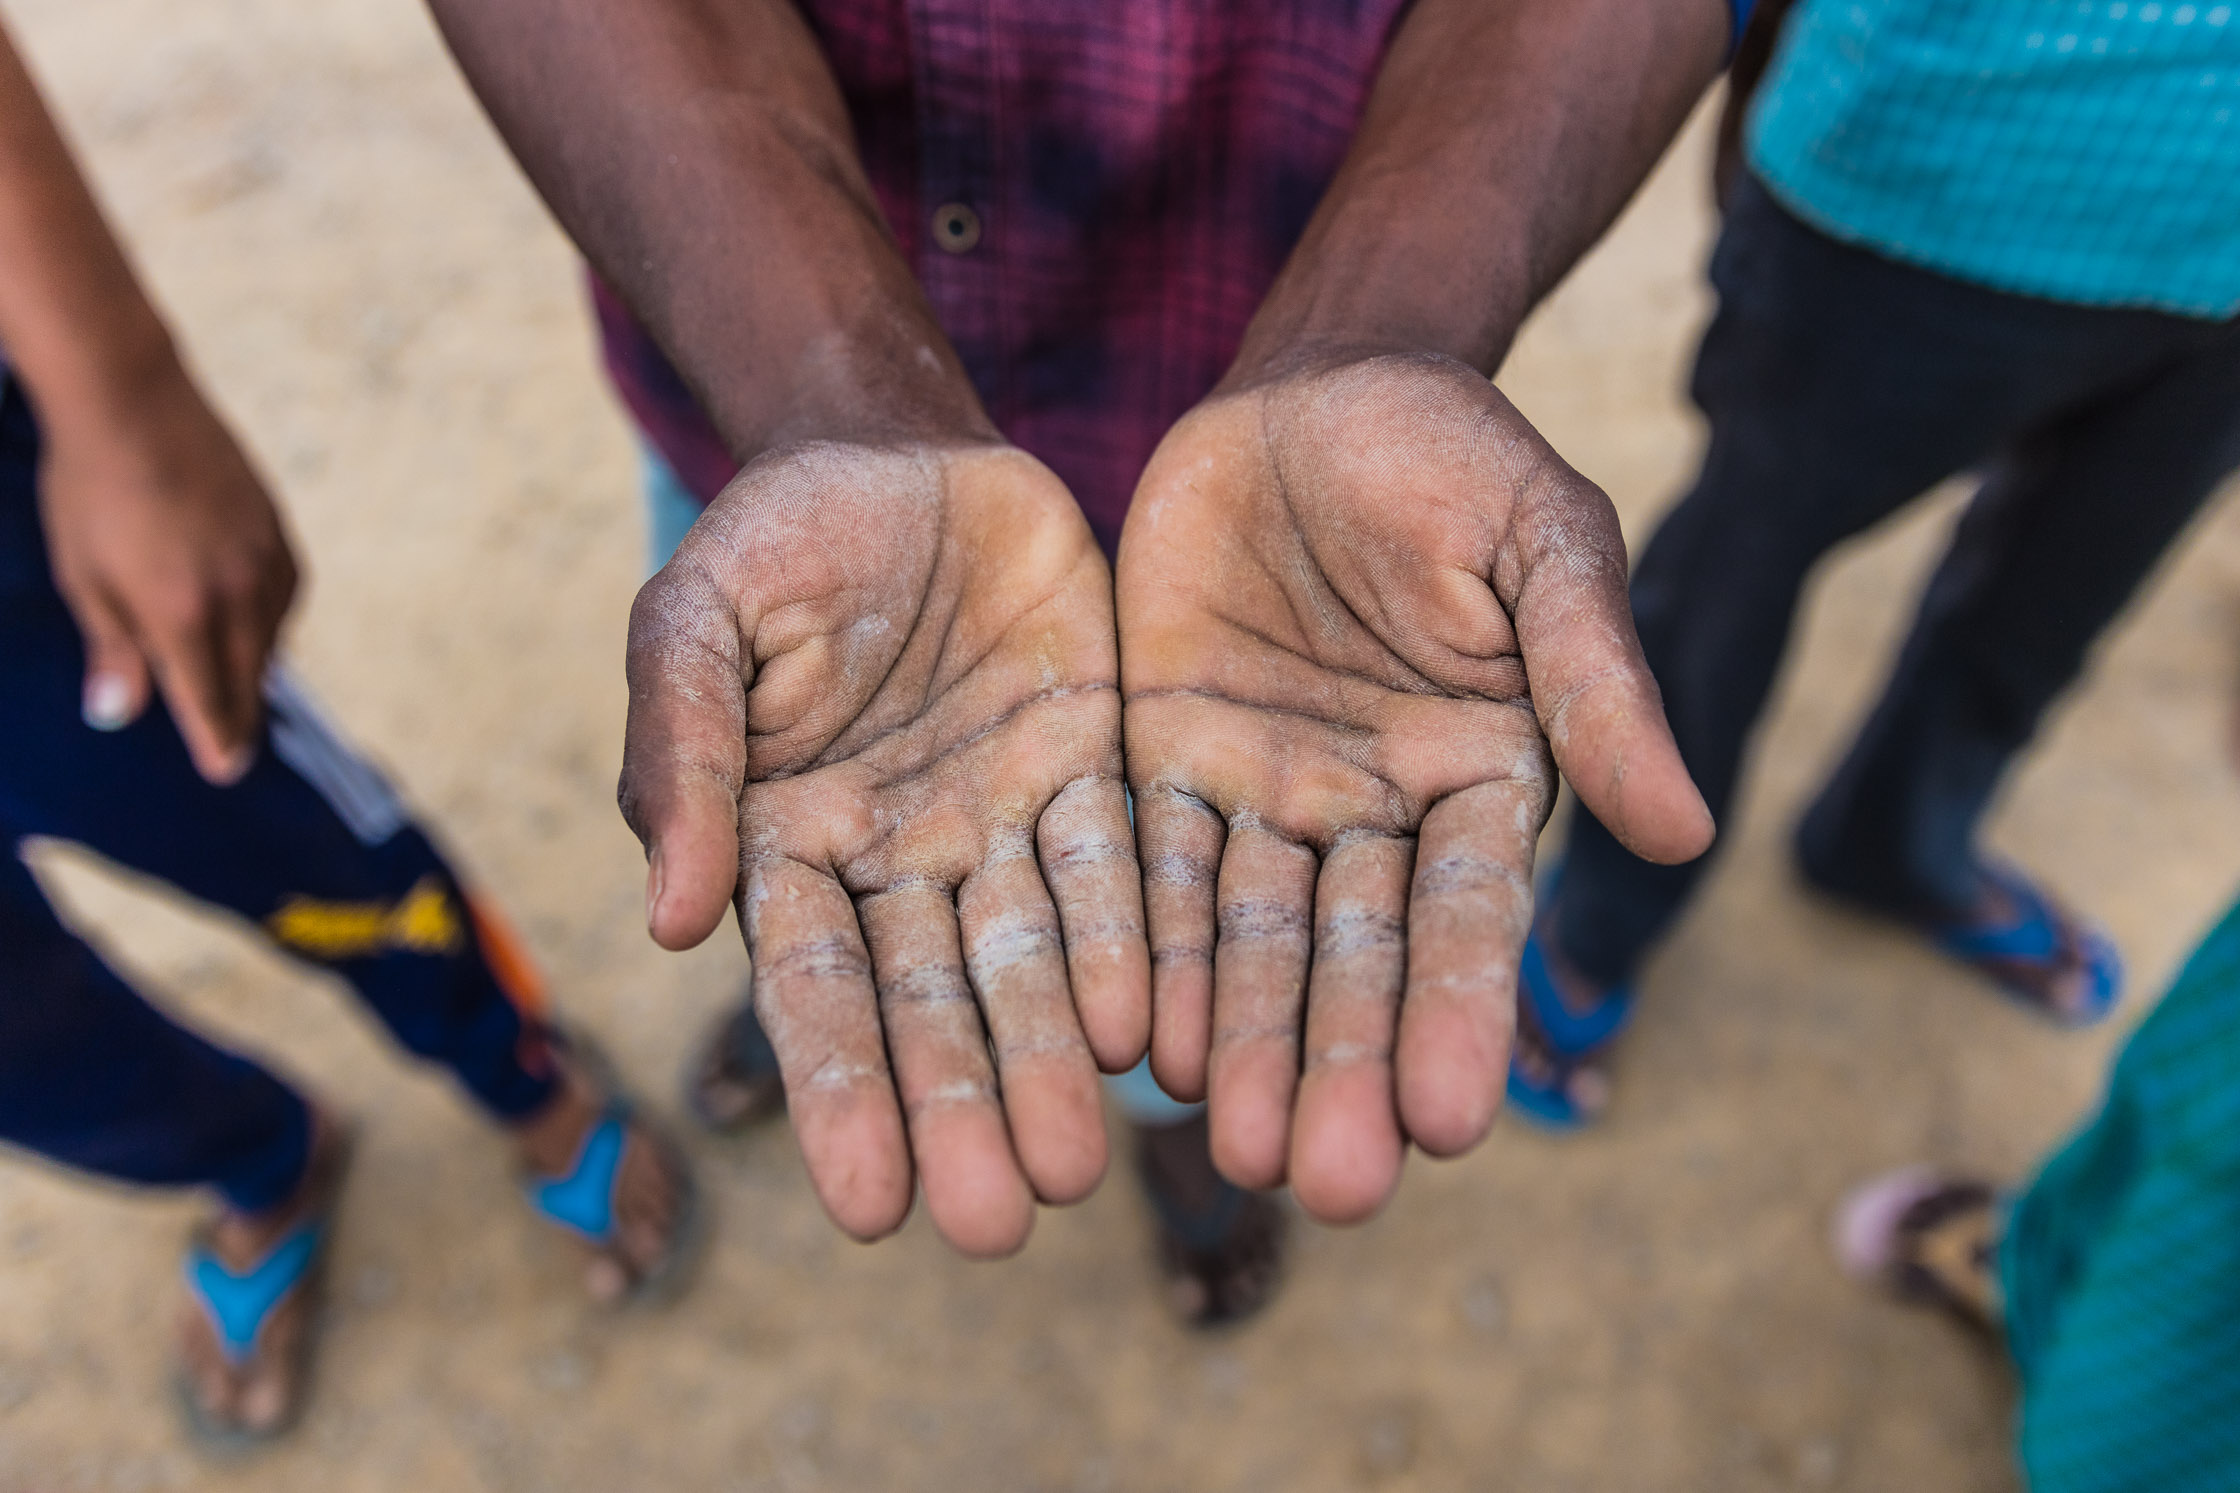 The hands of a stonecutter from Warangal, Telangana. Photo credit: Toby Smith.